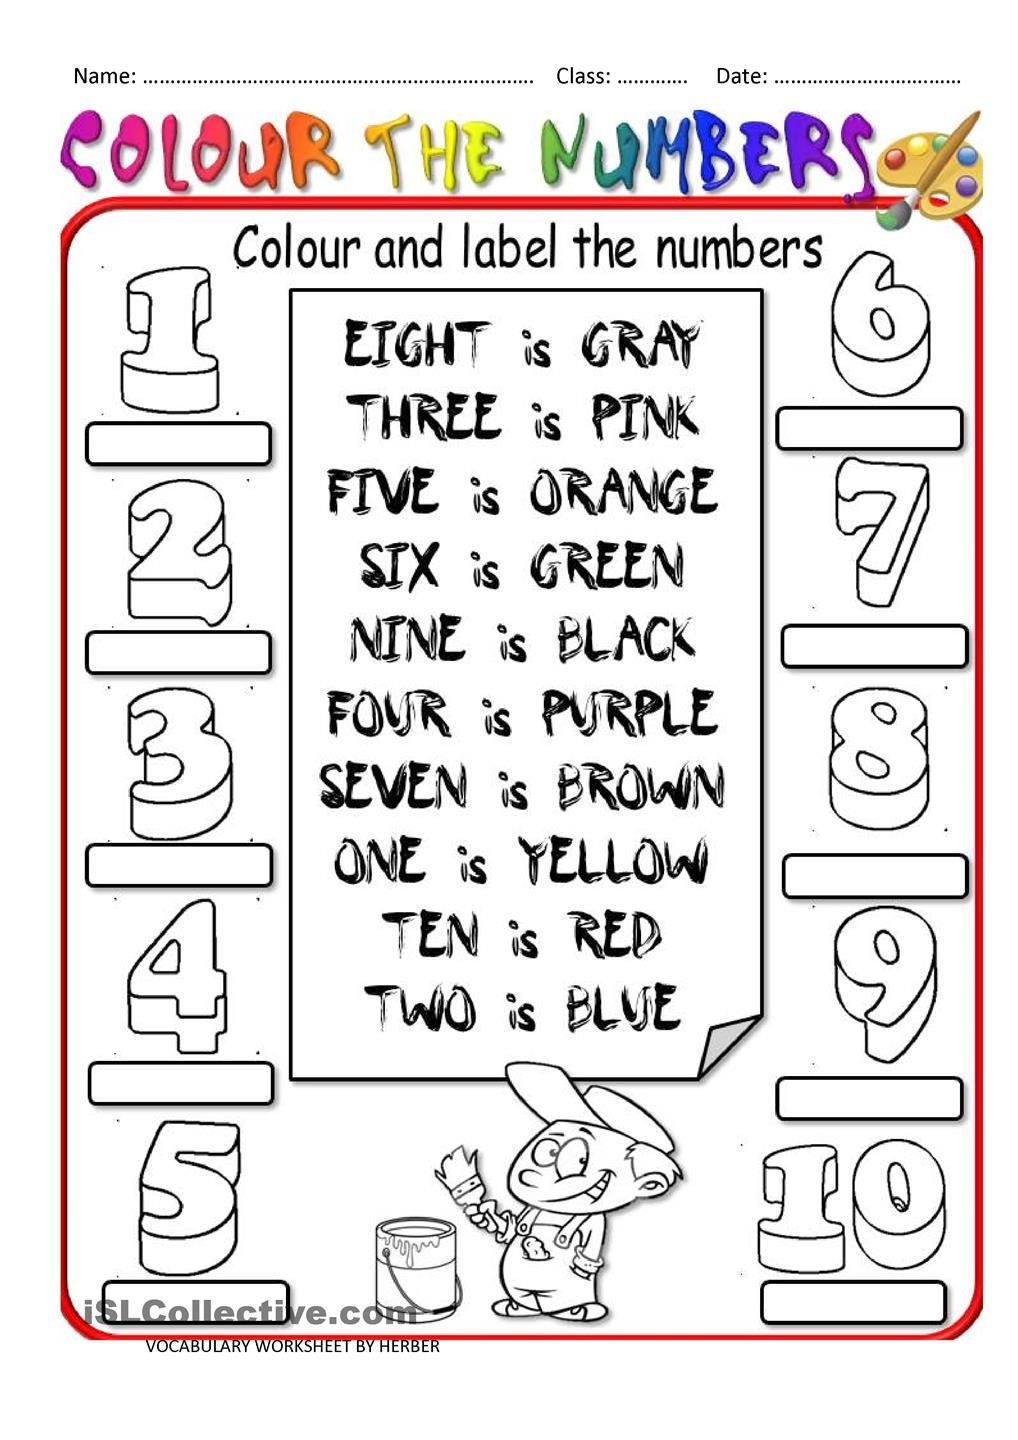 COLOUR THE NUMBERS English worksheets for kids